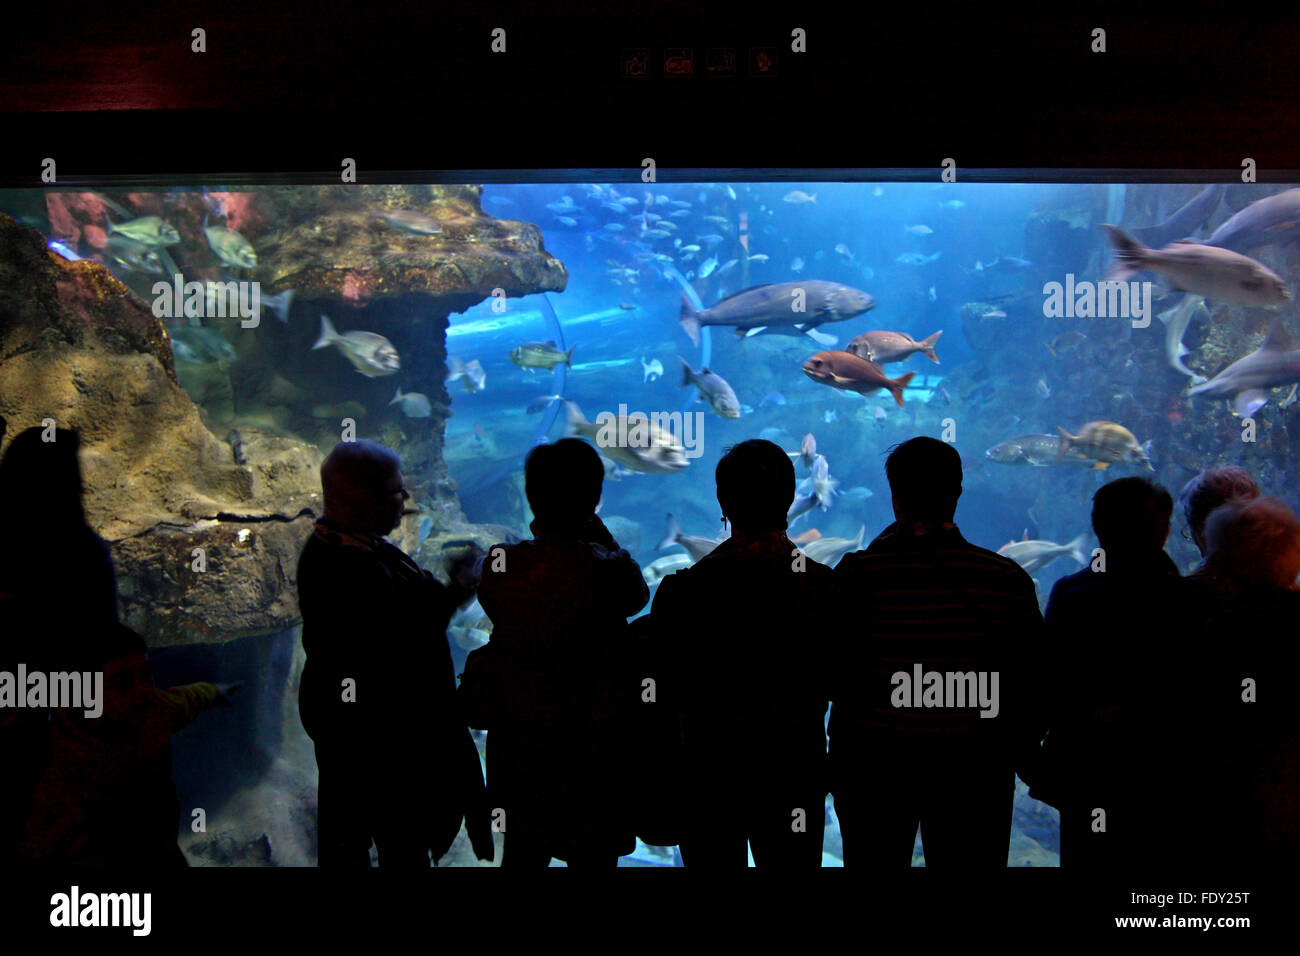 In the Aquarium of San Sebastian (Donostia), Basque Country, Spain. - Stock Image